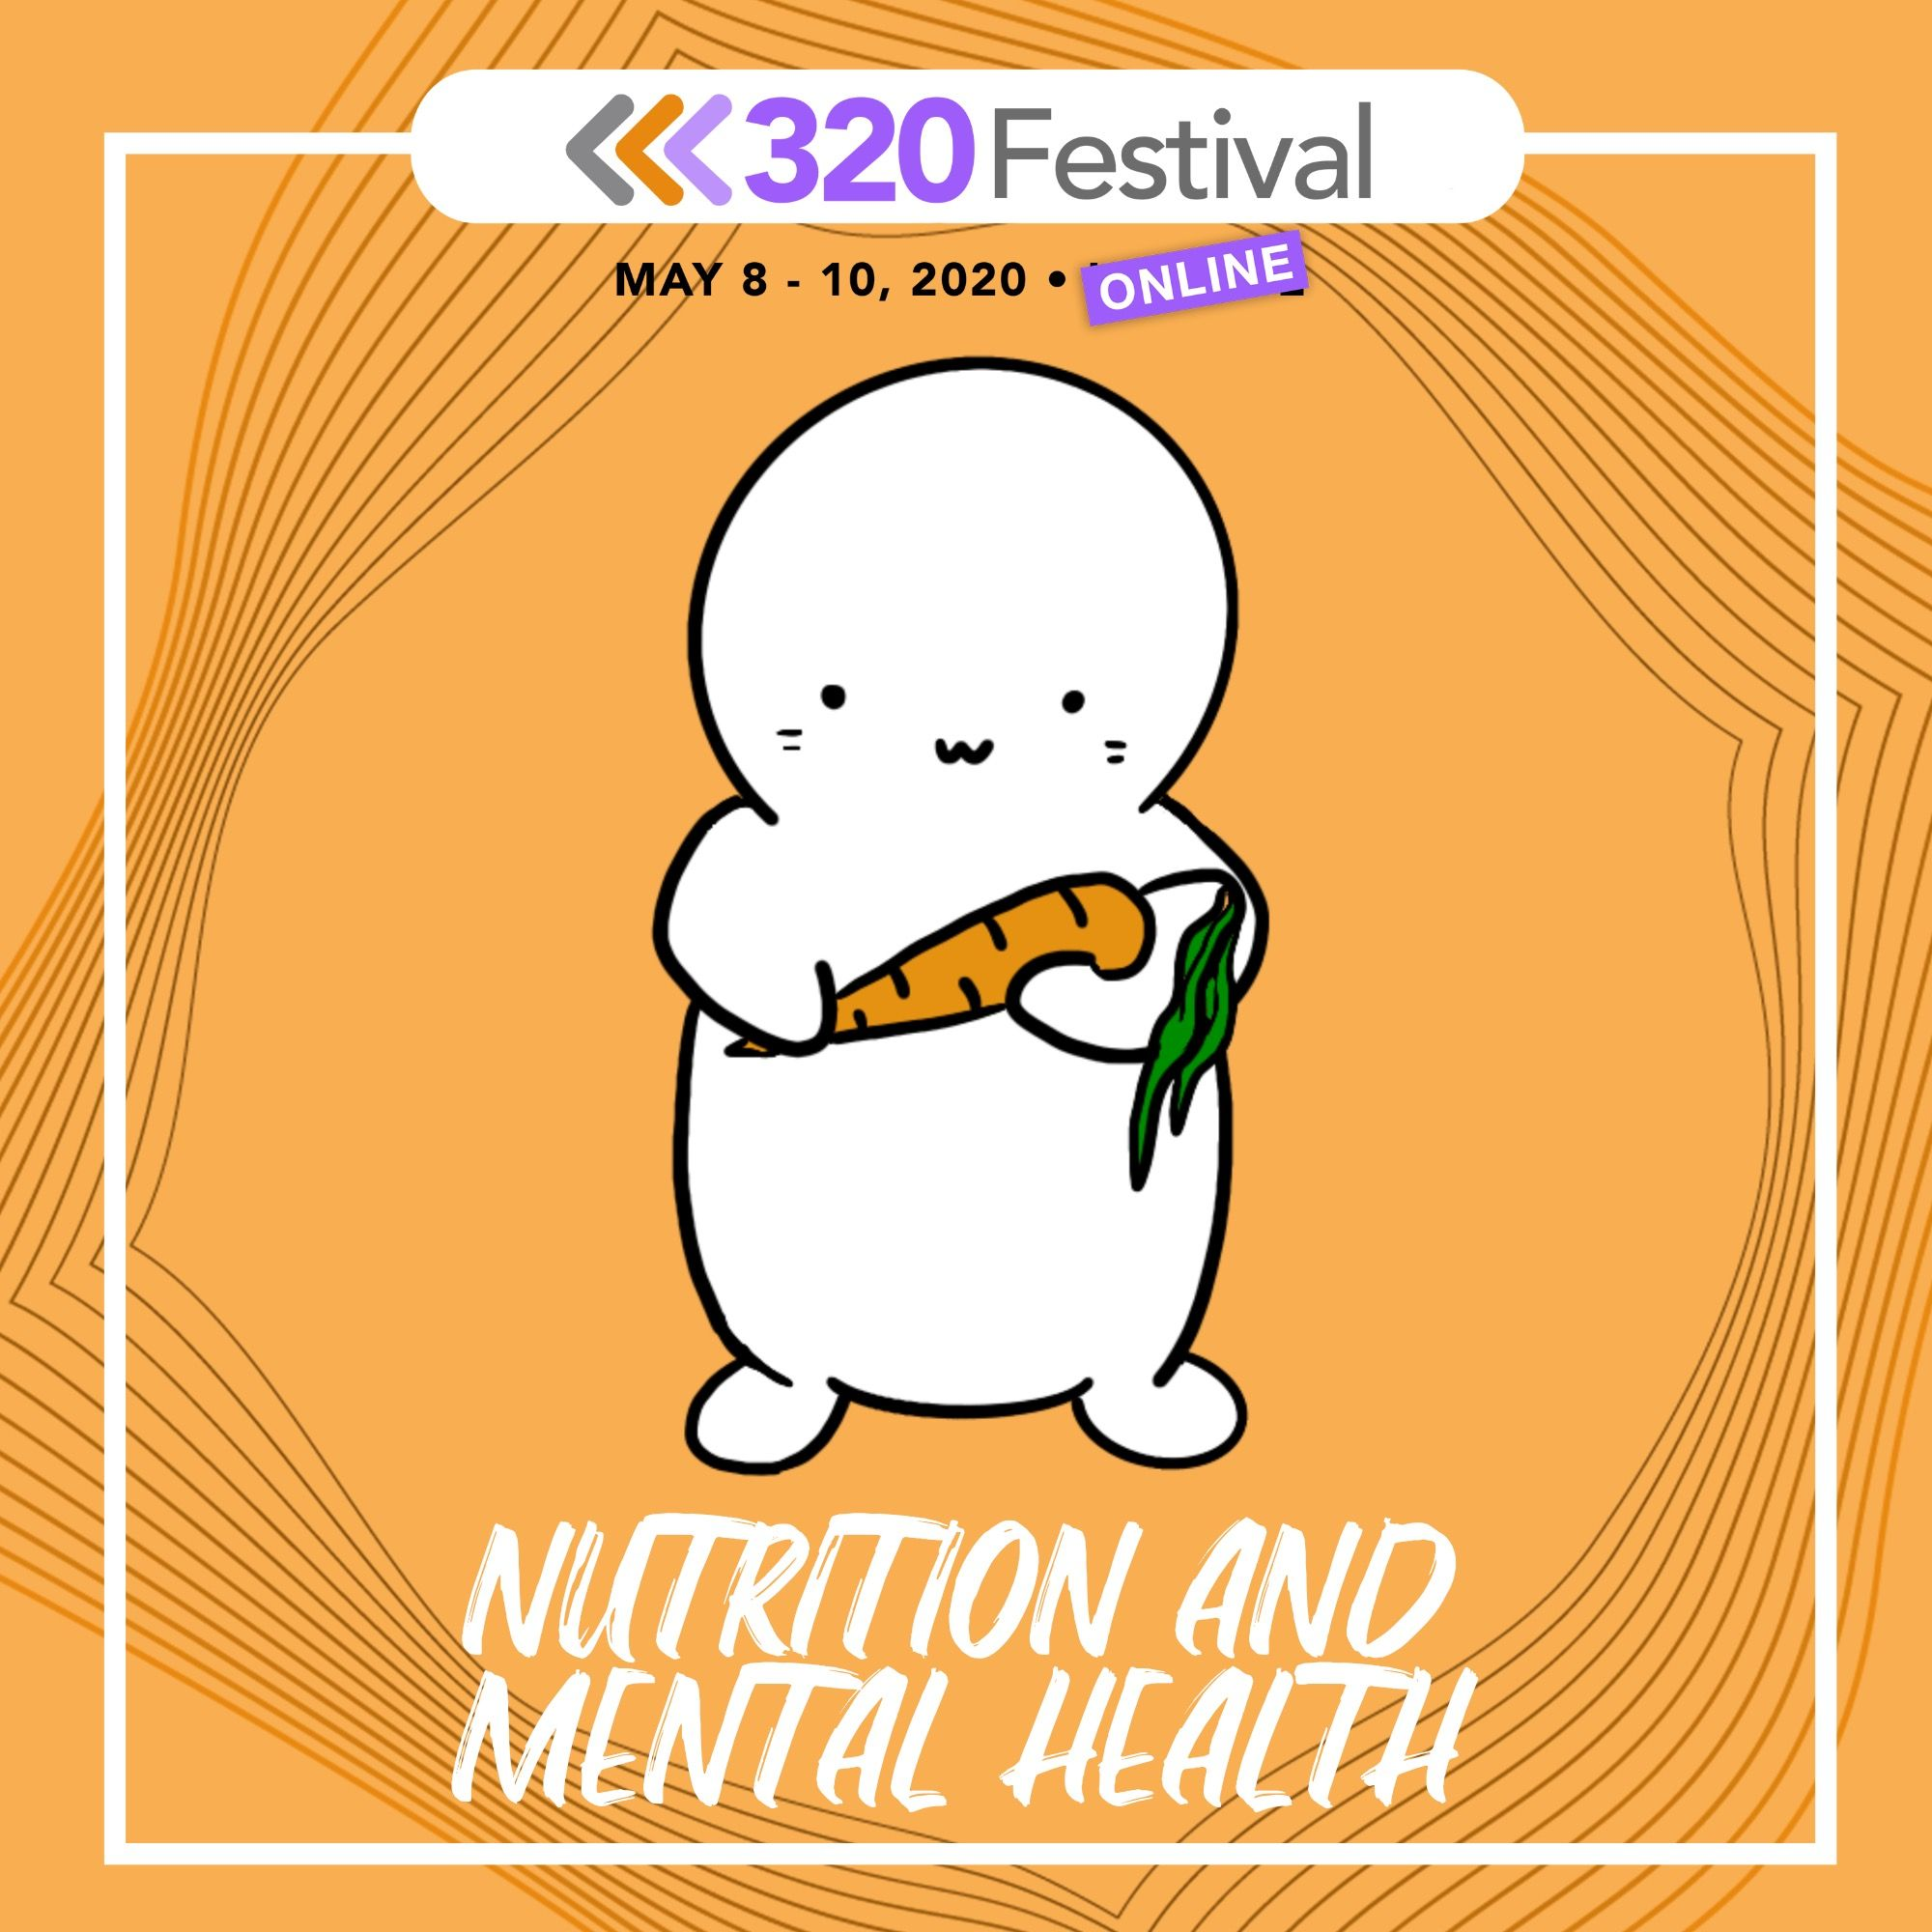 Watch Nutrition & Mental Health Panel from @320 Festival